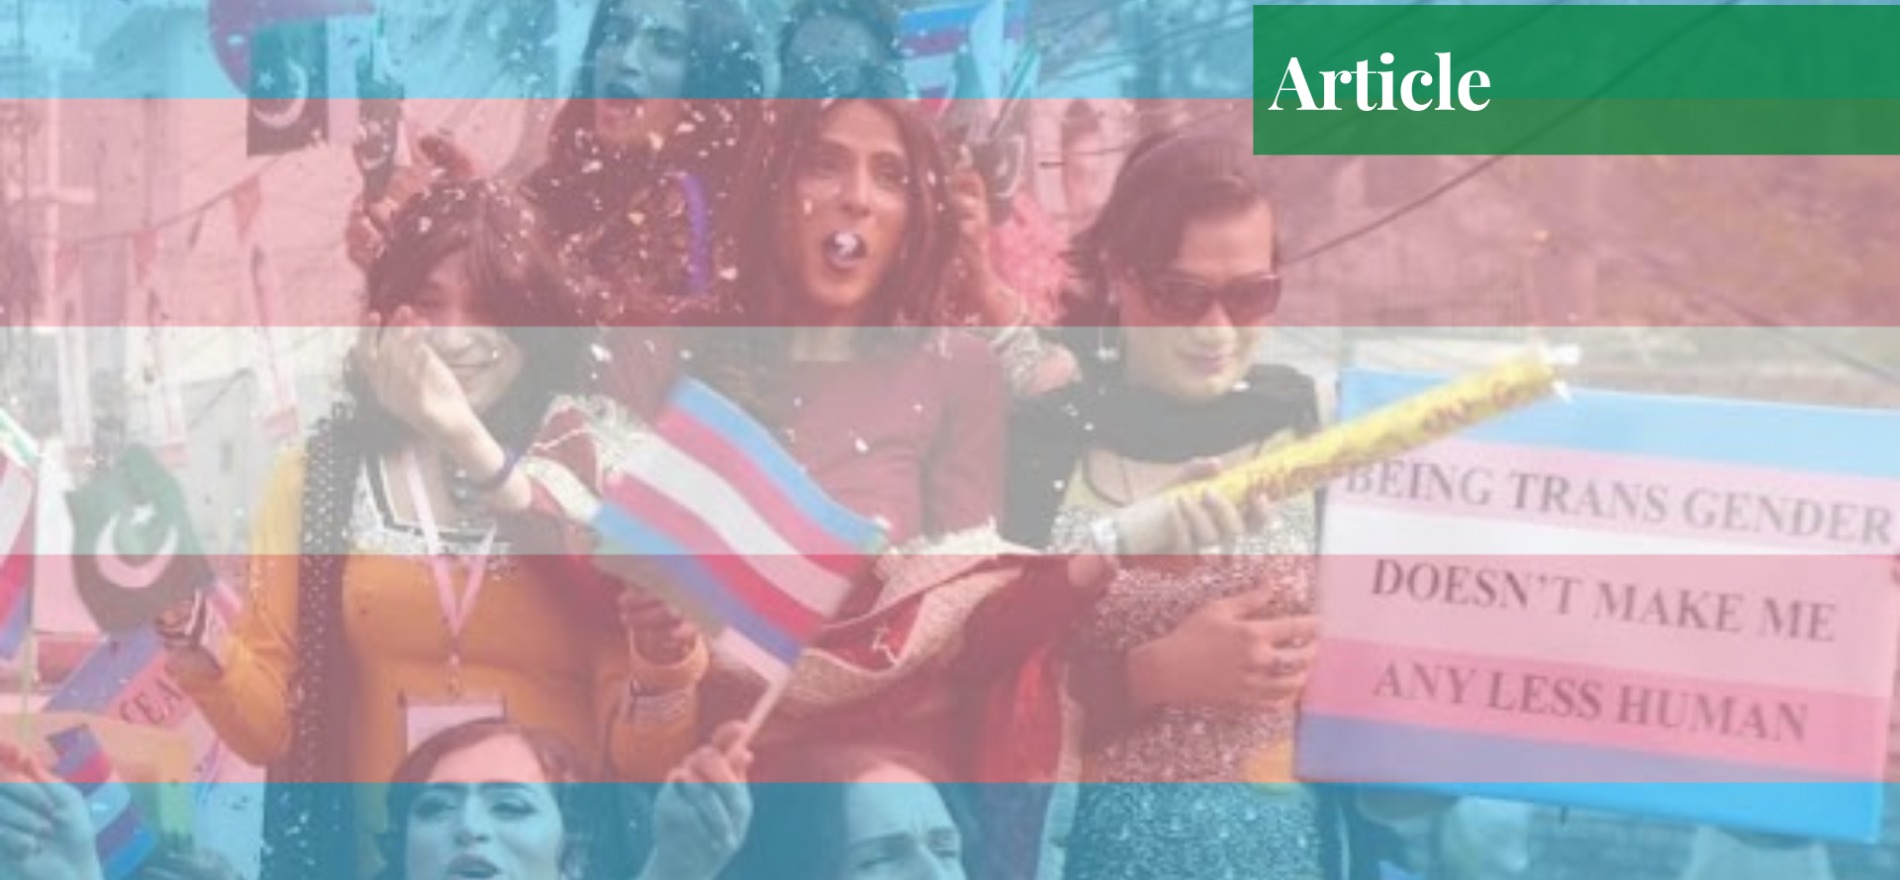 transgenders in Pakistan